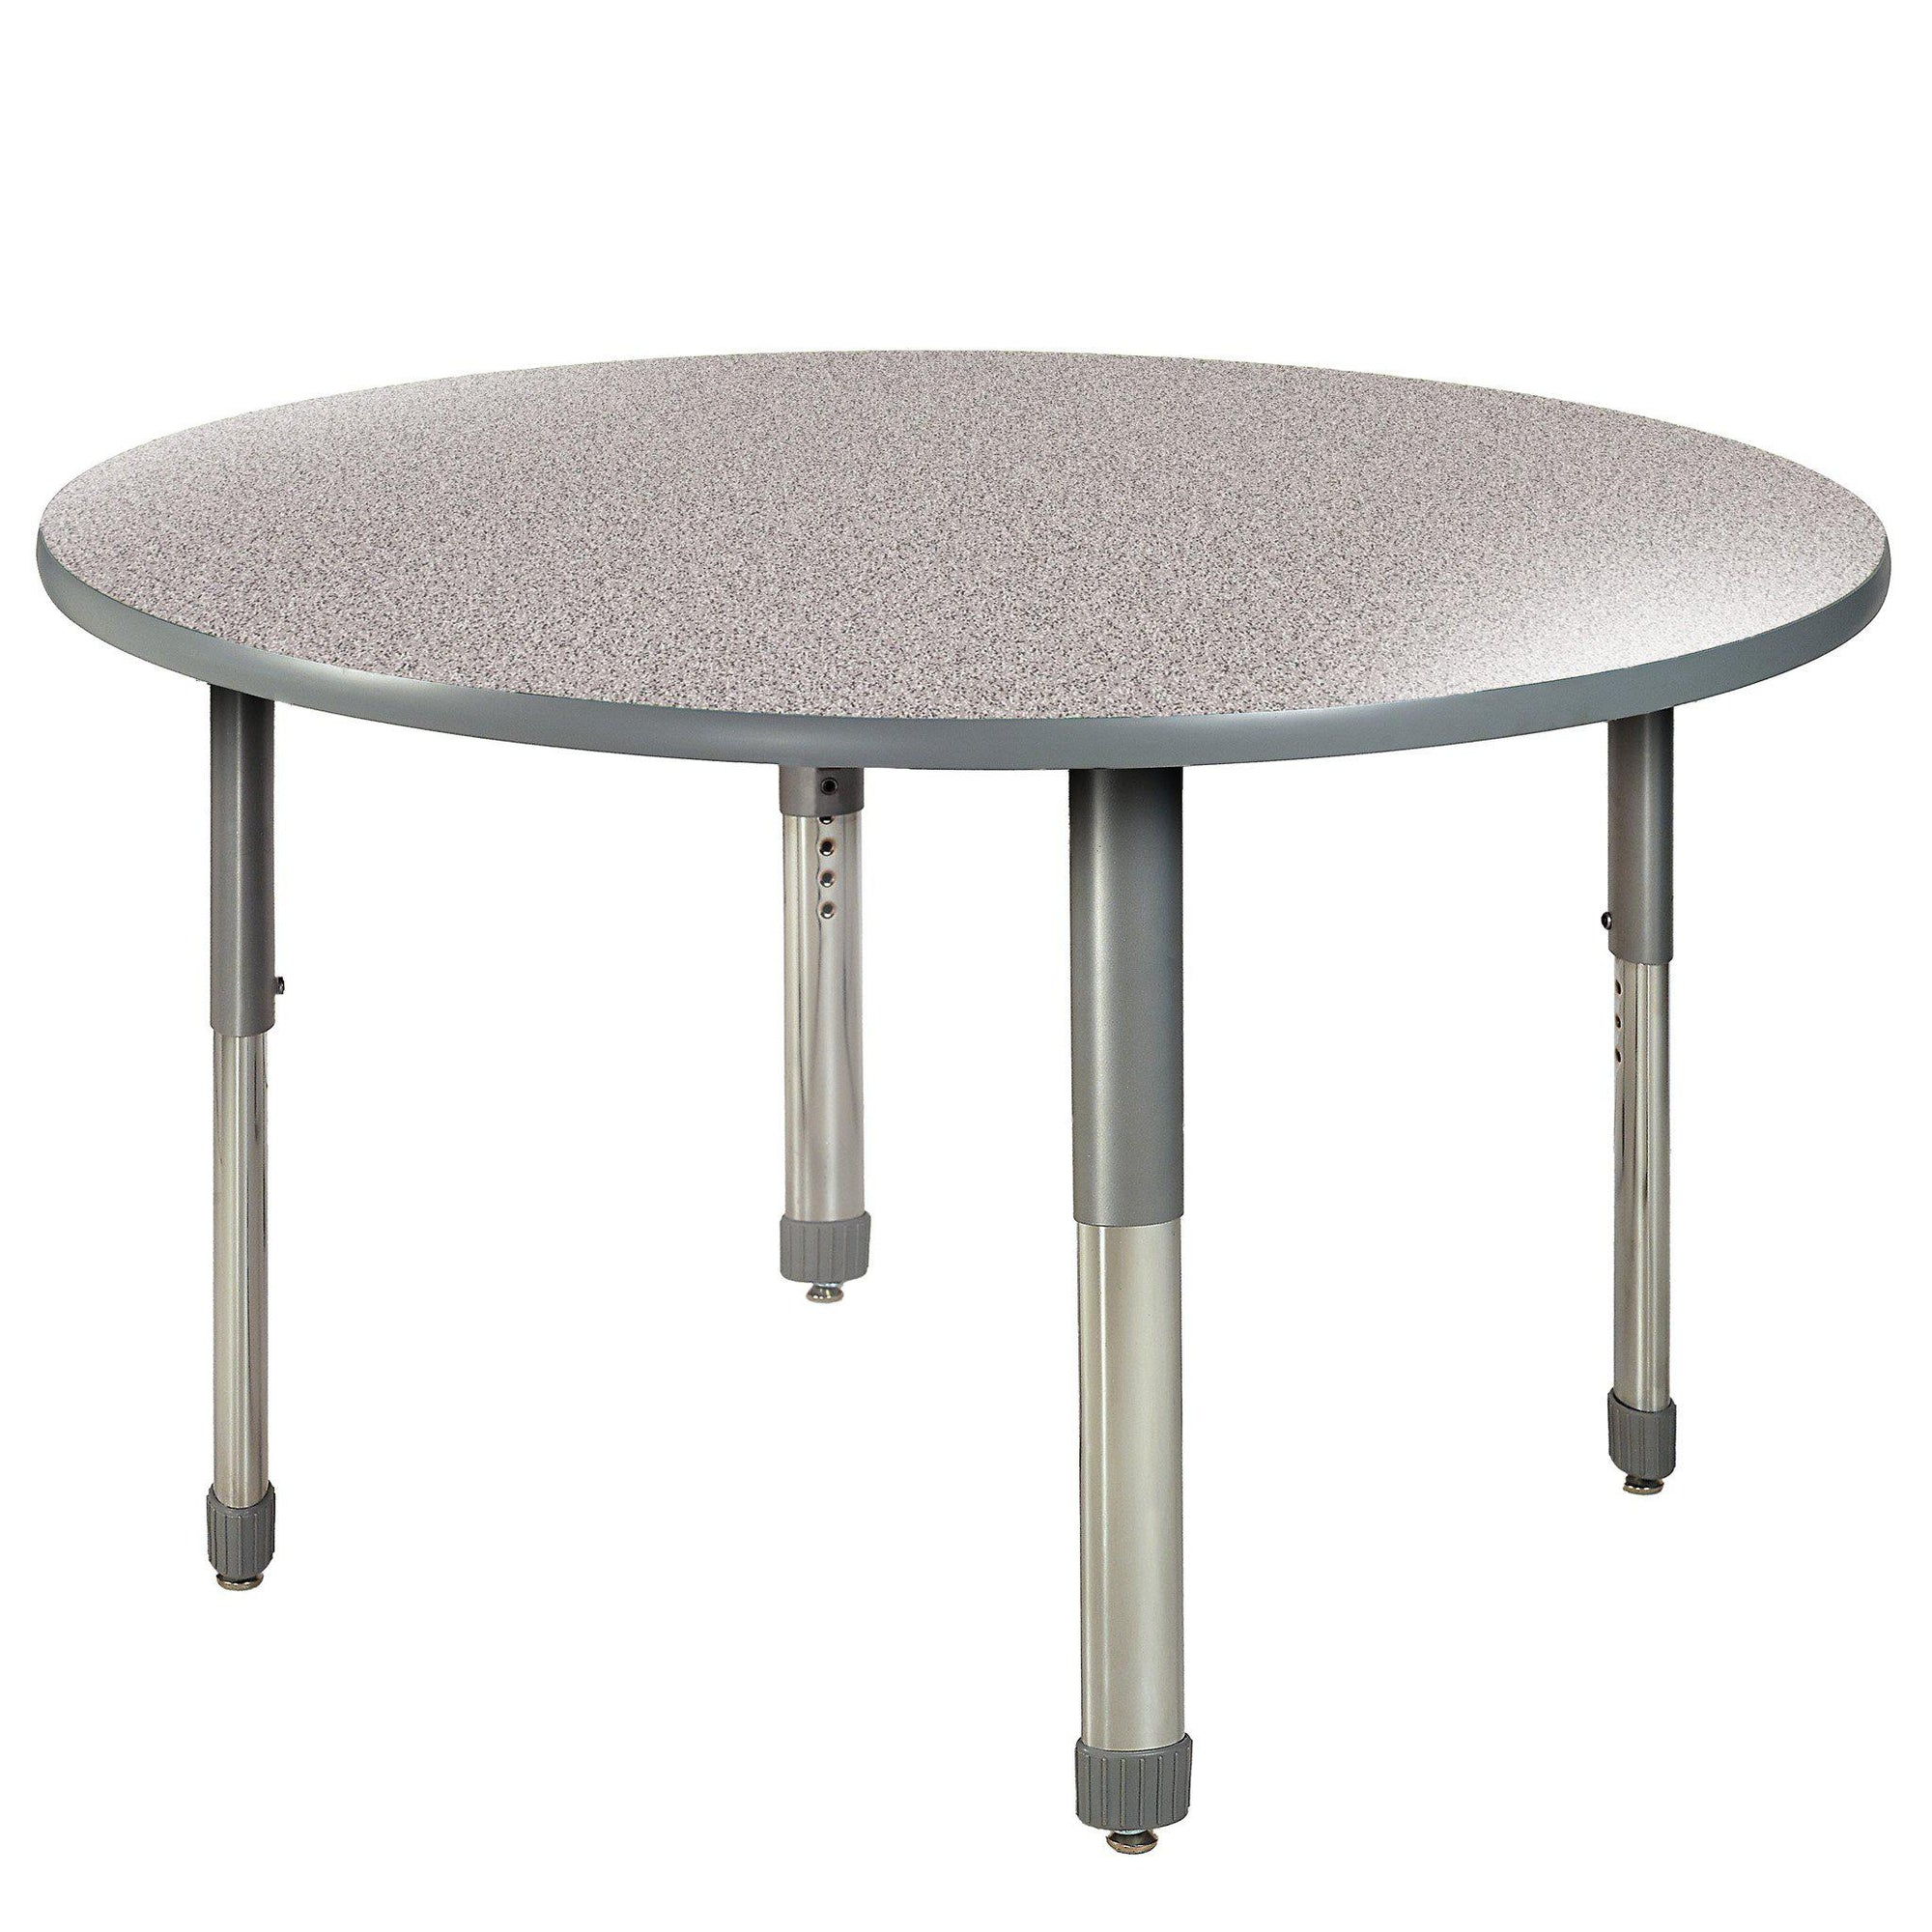 "Aero Activity Table, 42"" Circle, Oval Adjustable Height Legs"